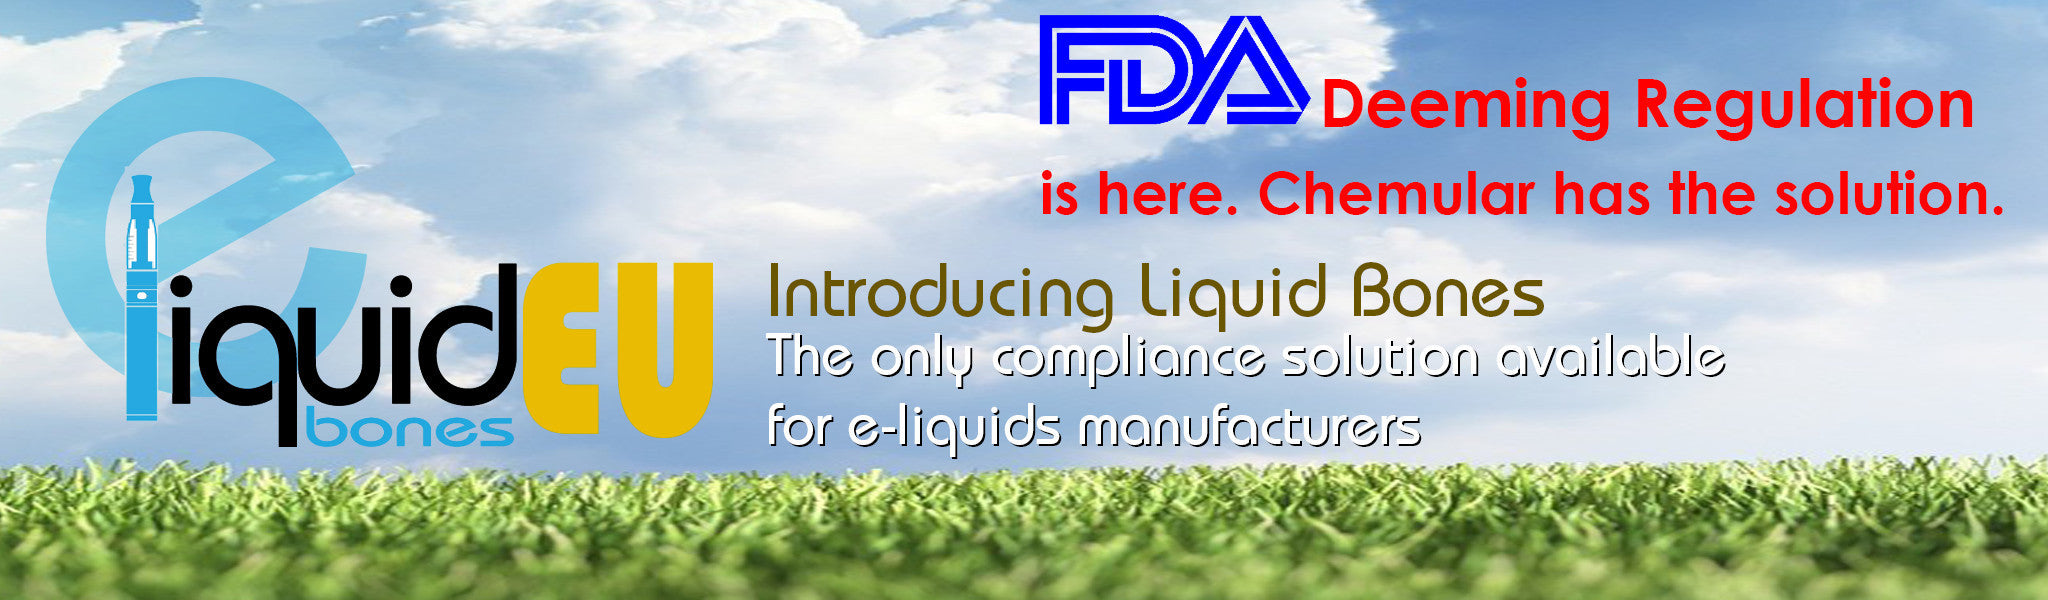 FDA's Deeming Regulations